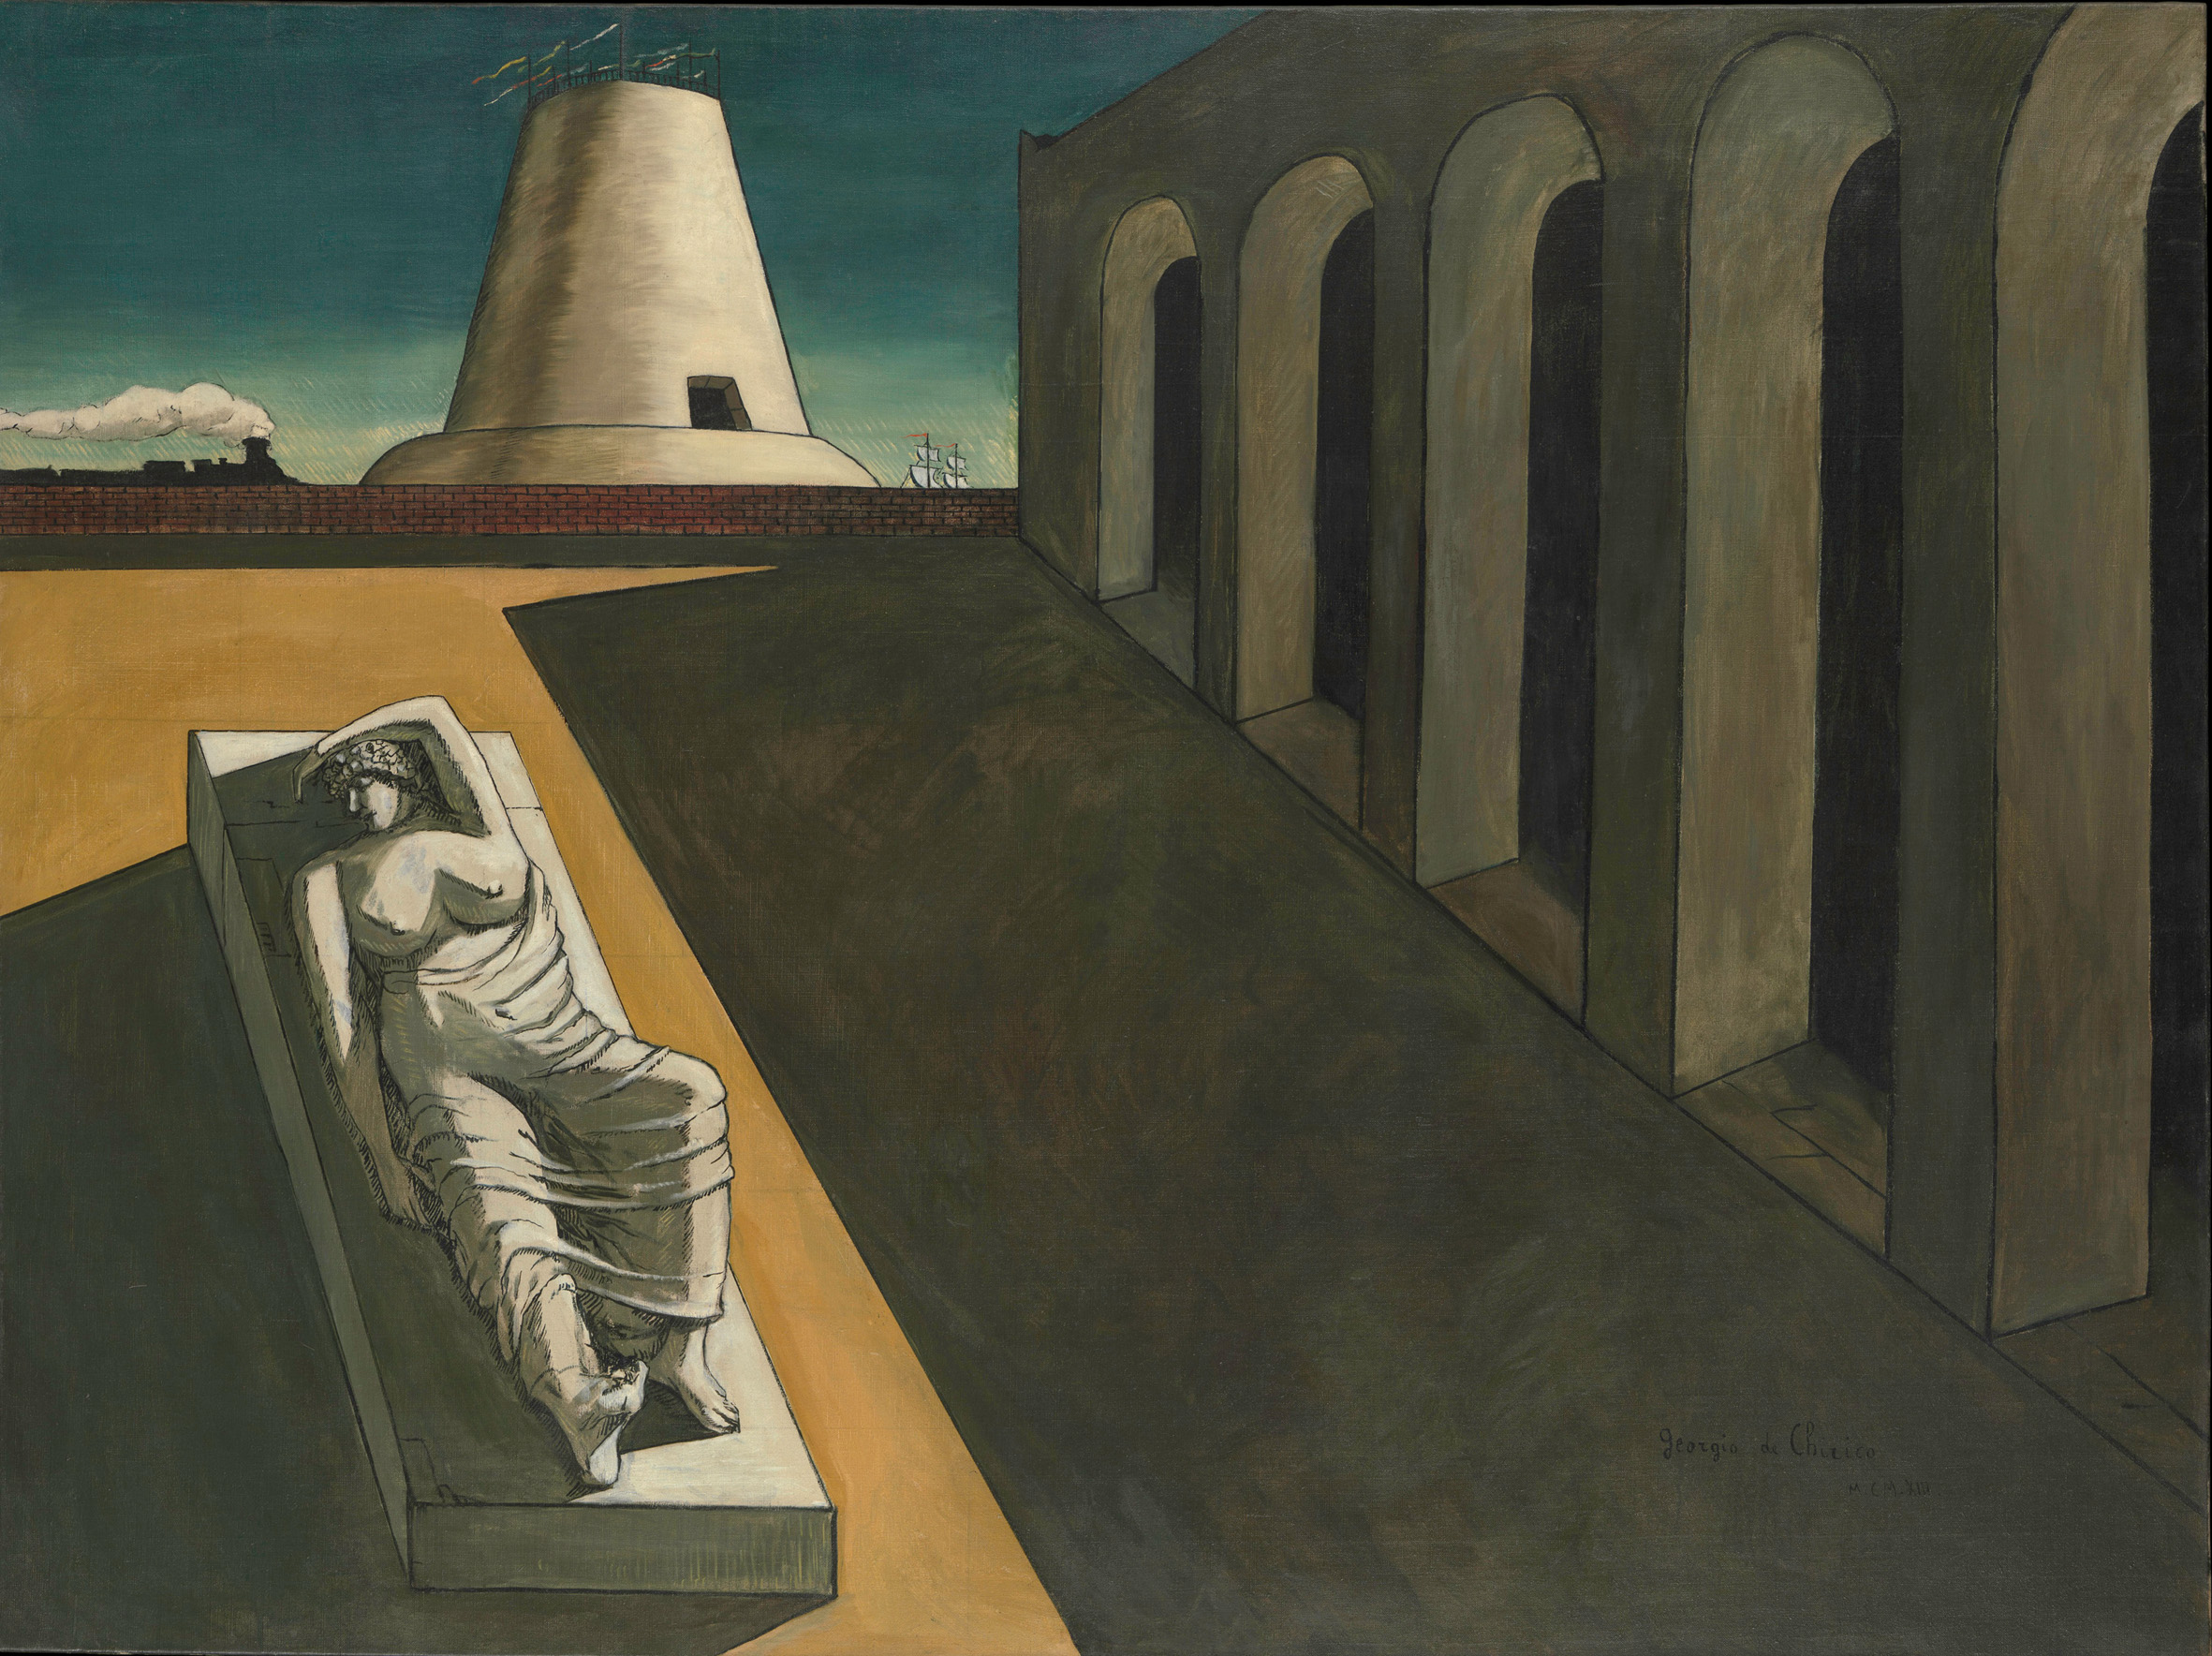 De Chirico, Giorgio (1888-1978): Ariadne, 1913 New York Metropolitan Museum of Art *** Permission for usage must be provided in writing from Scala.